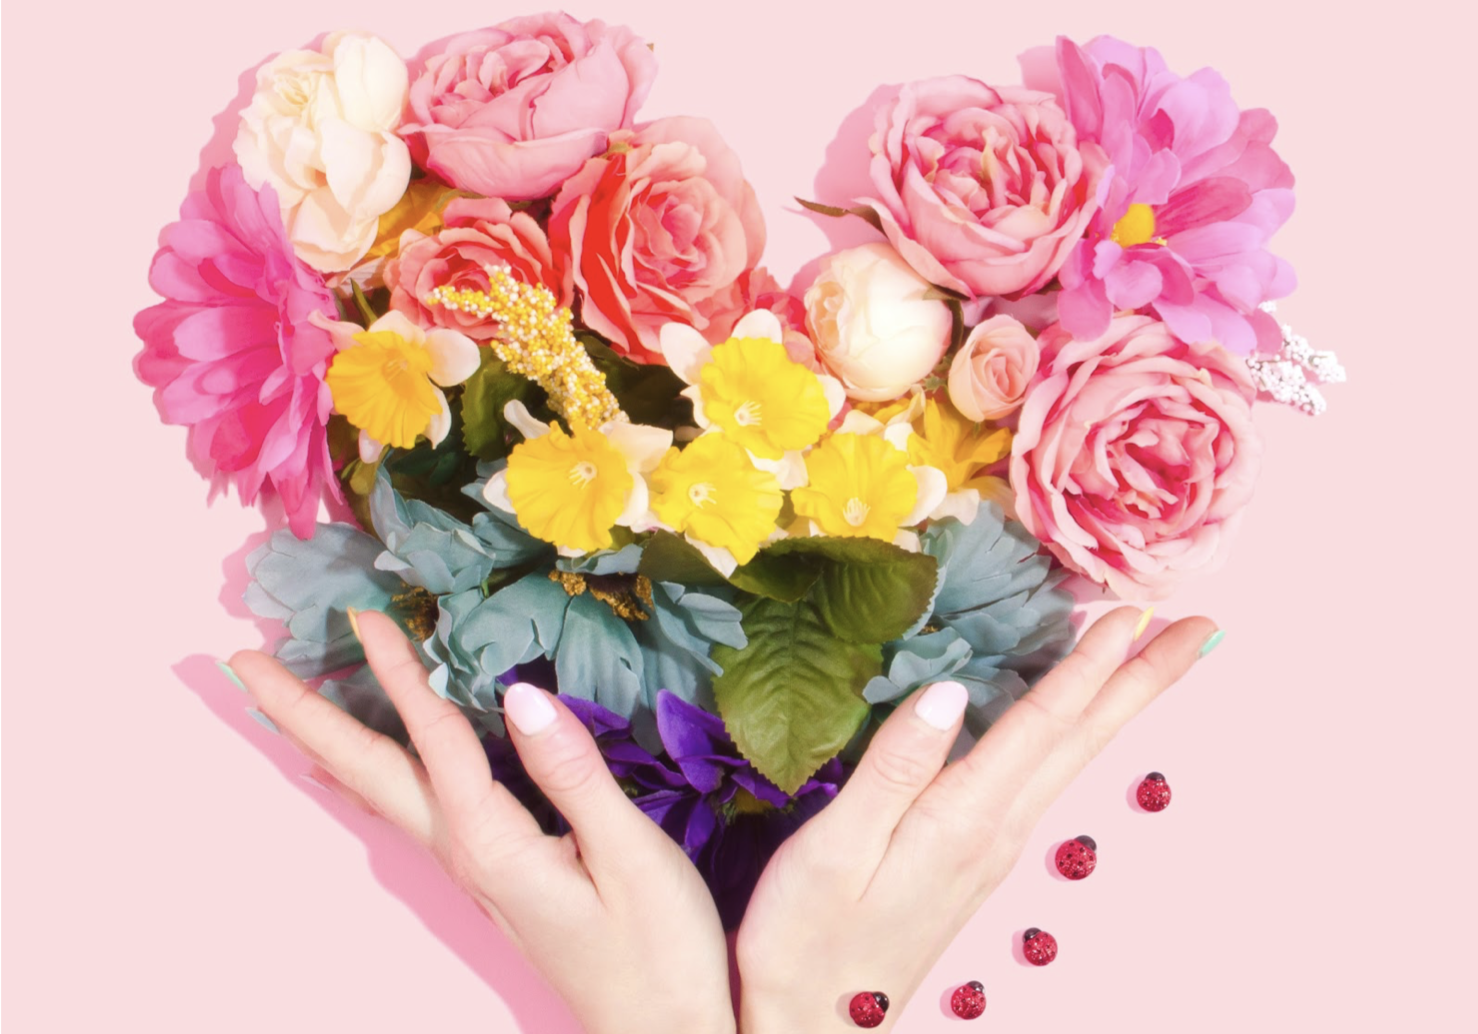 Colorful flowers as romantic Valentine's day gift.